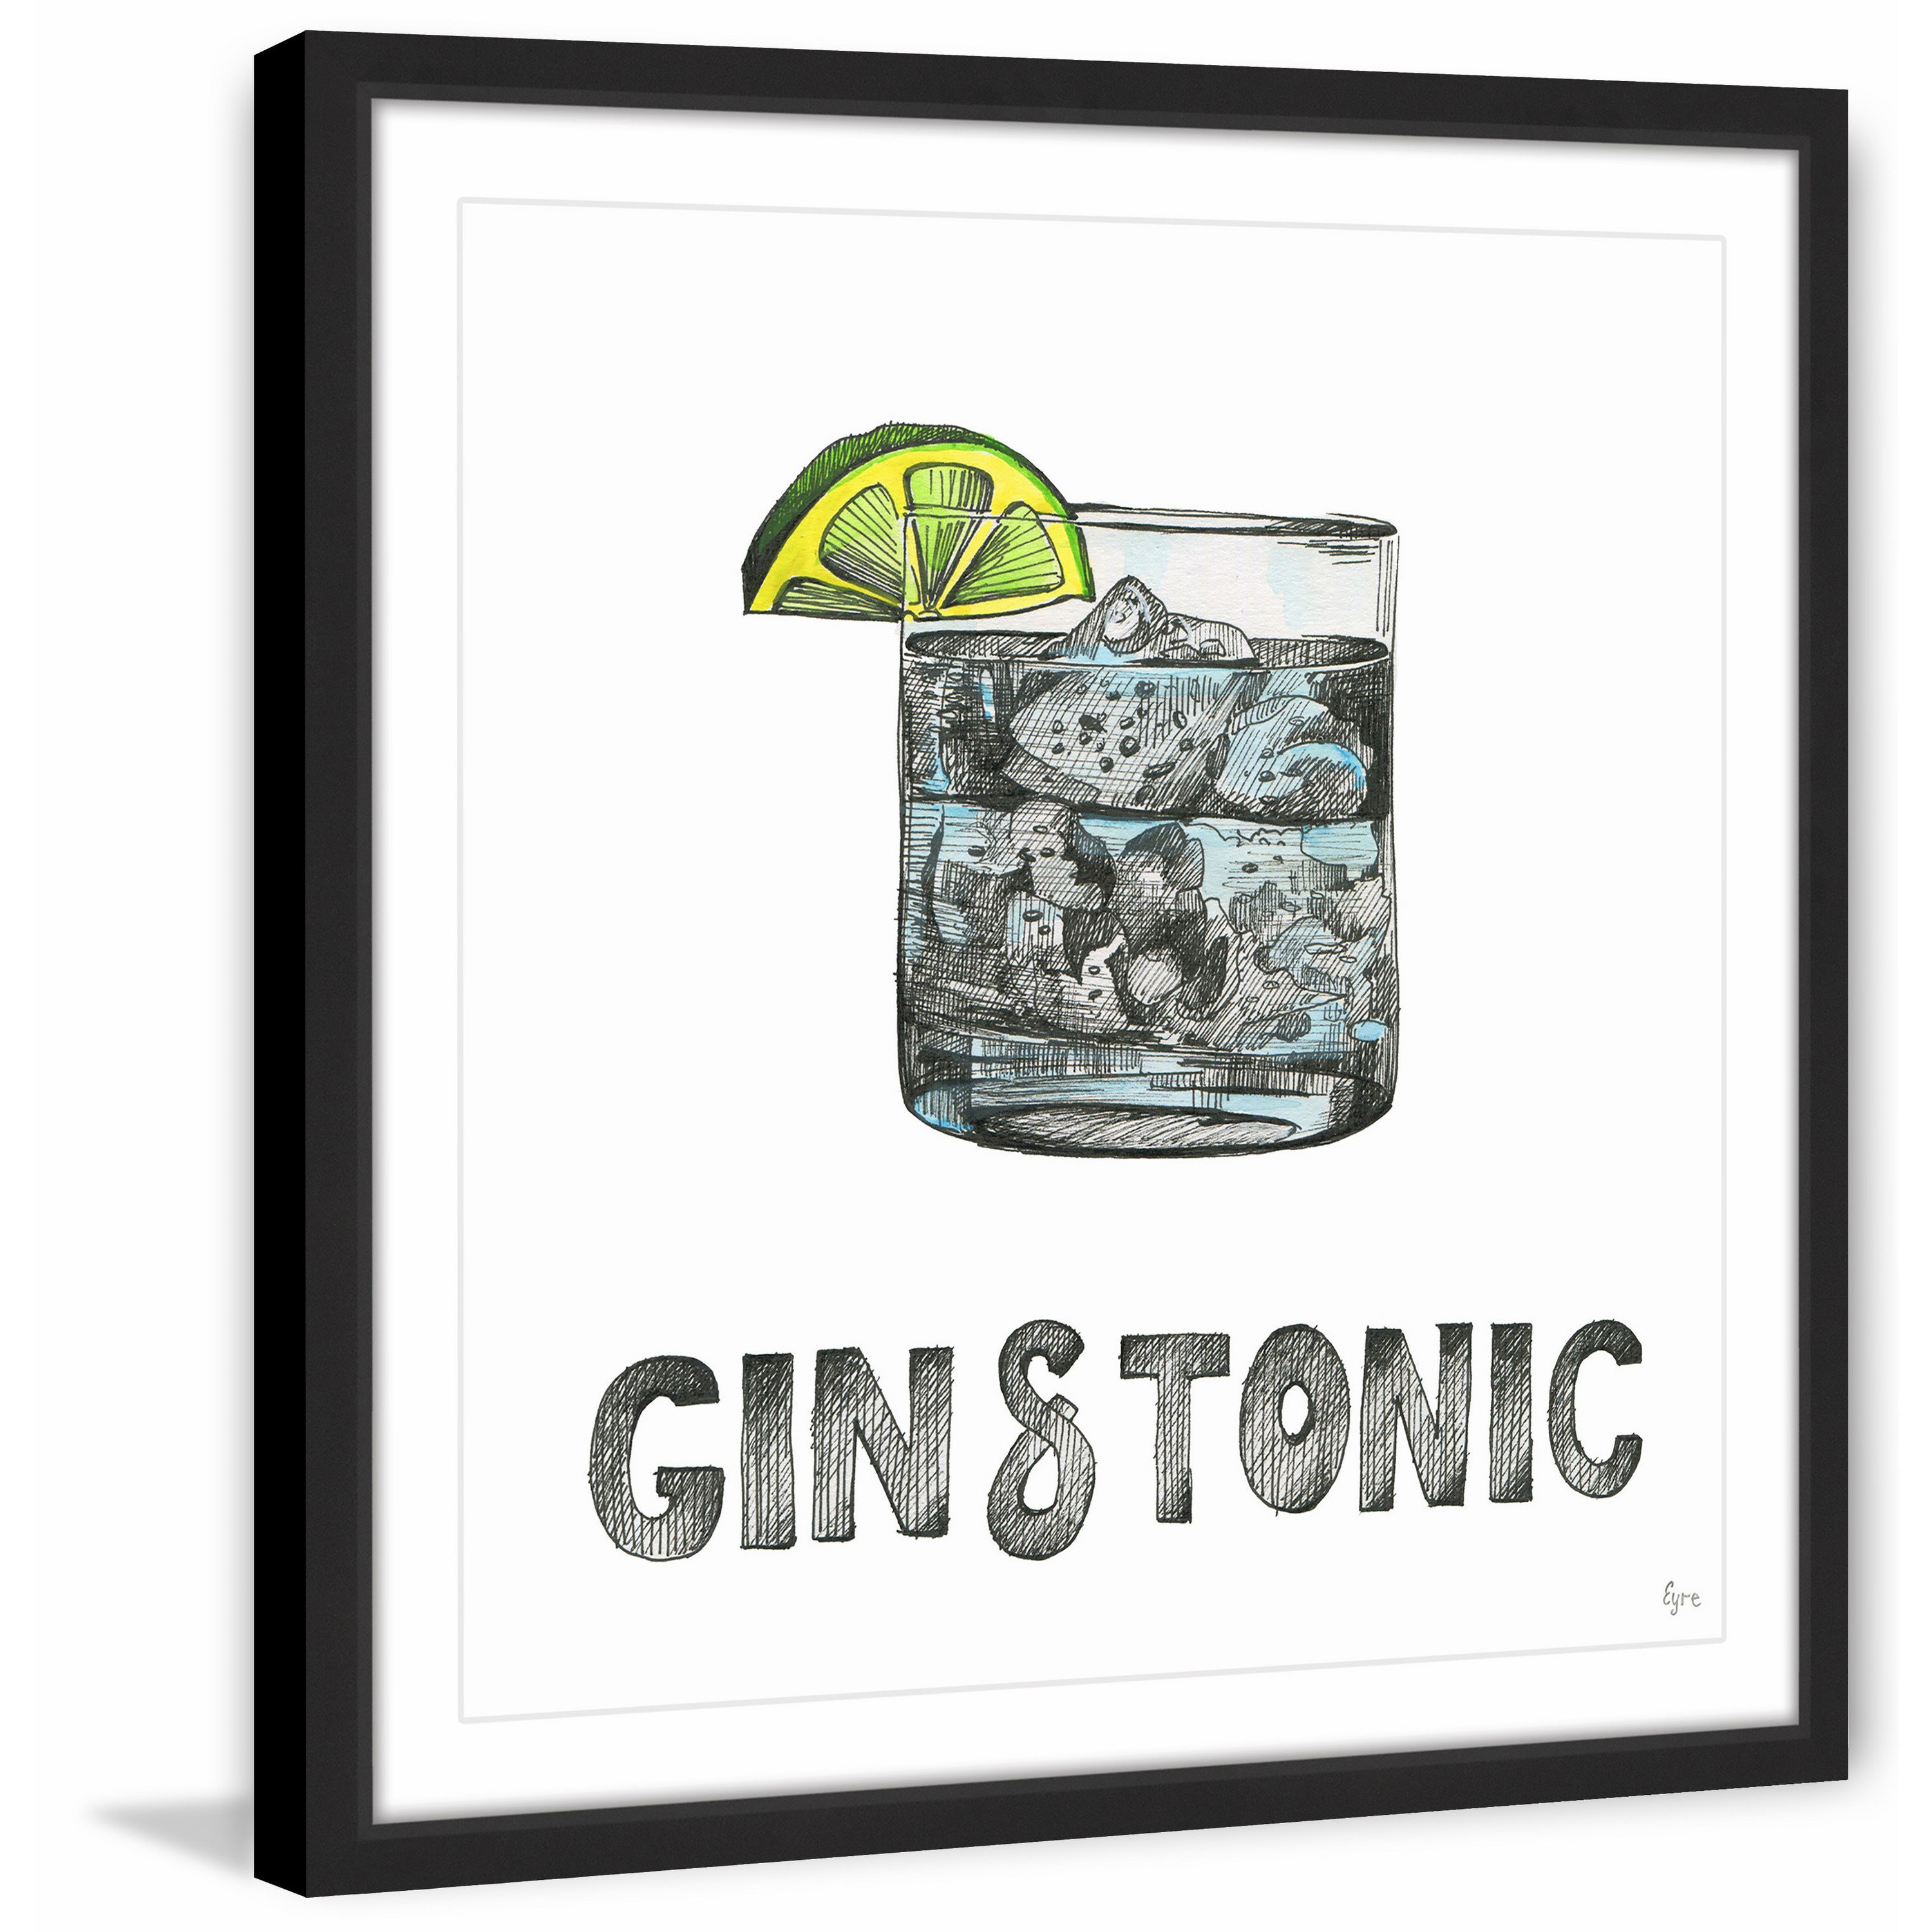 gin tonic framed painting print free shipping today uttermost cube accent table pier imports mirrors grey green paint antique side mission style tiffany lamps white resin outdoor